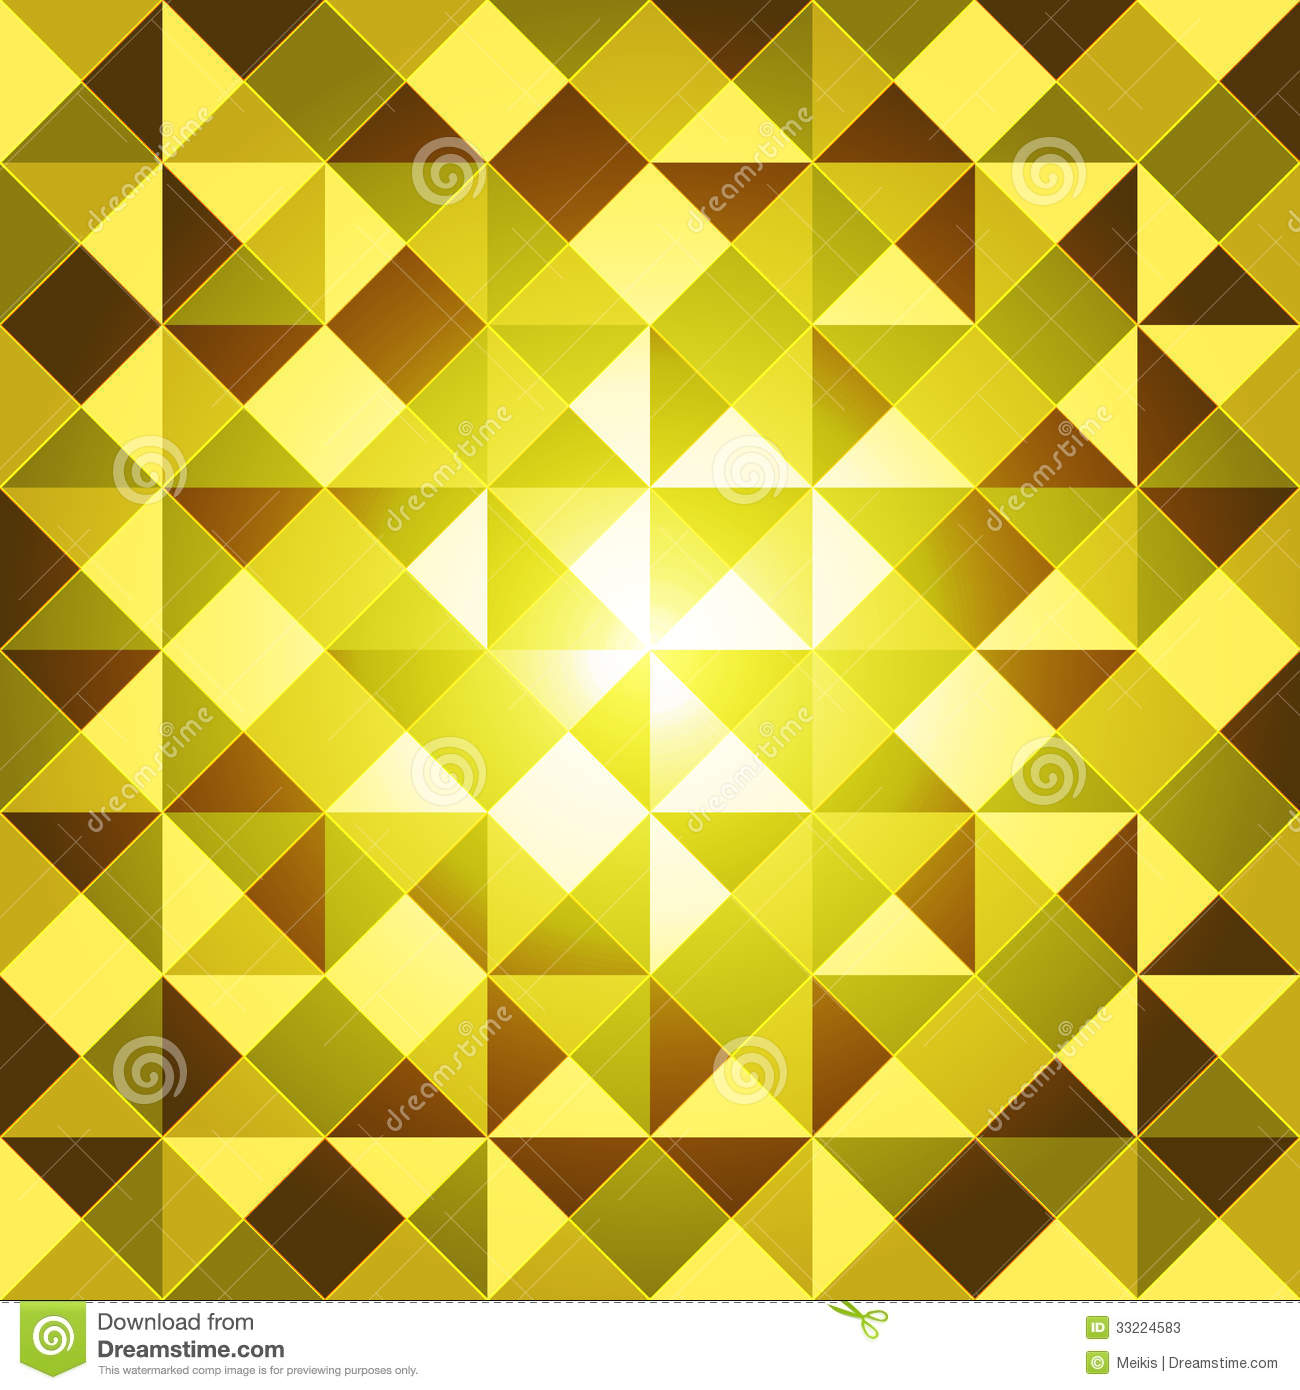 FunMozar Colorful Geometric Wallpapers 1300x1390